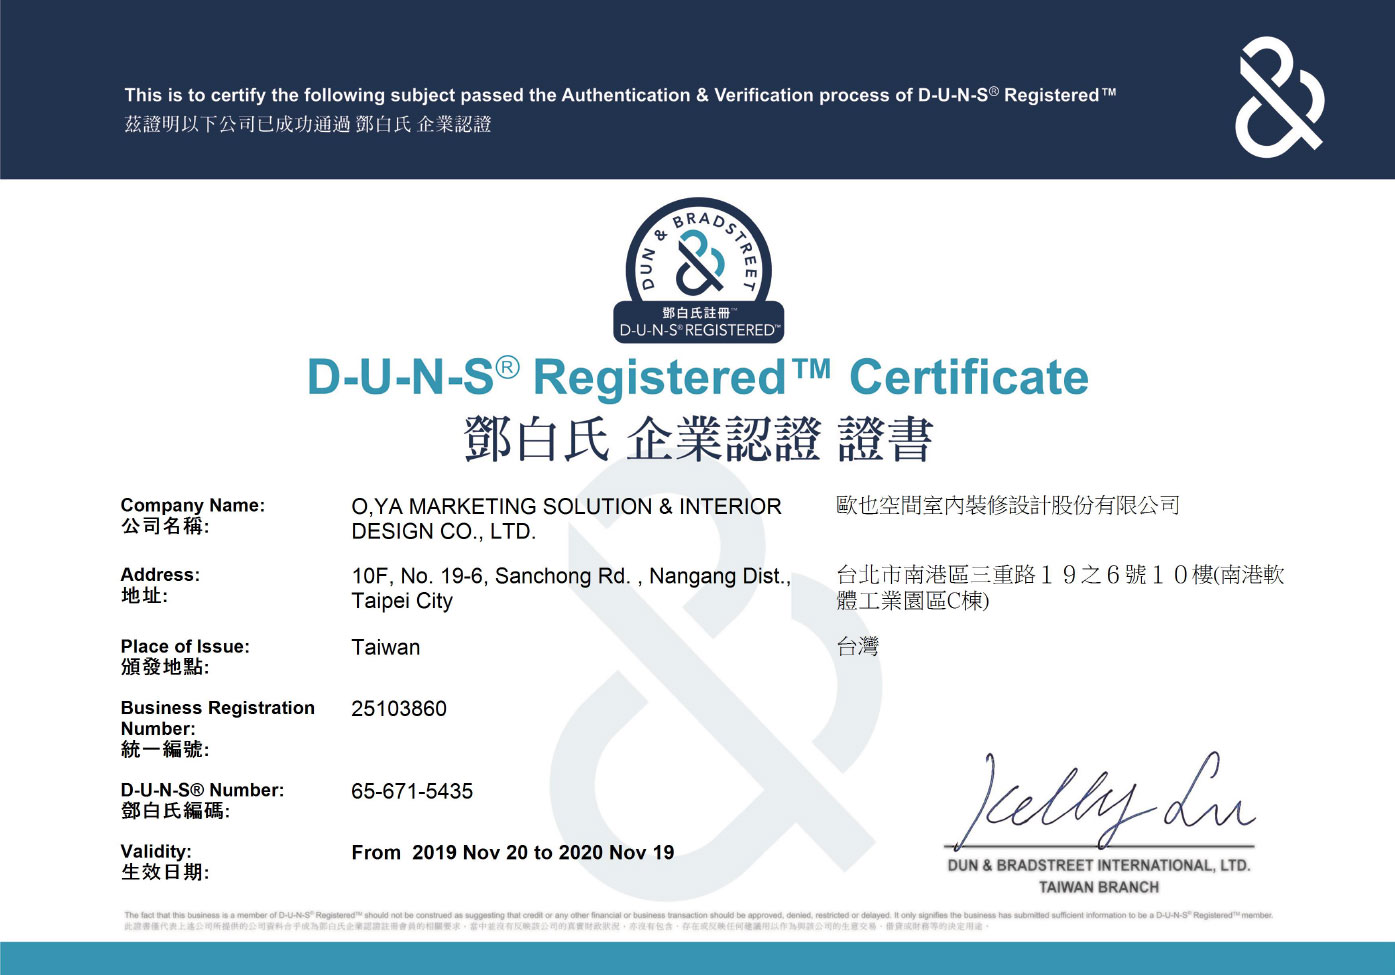 鄧白氏企業認證DUNS Registered-歐也空間